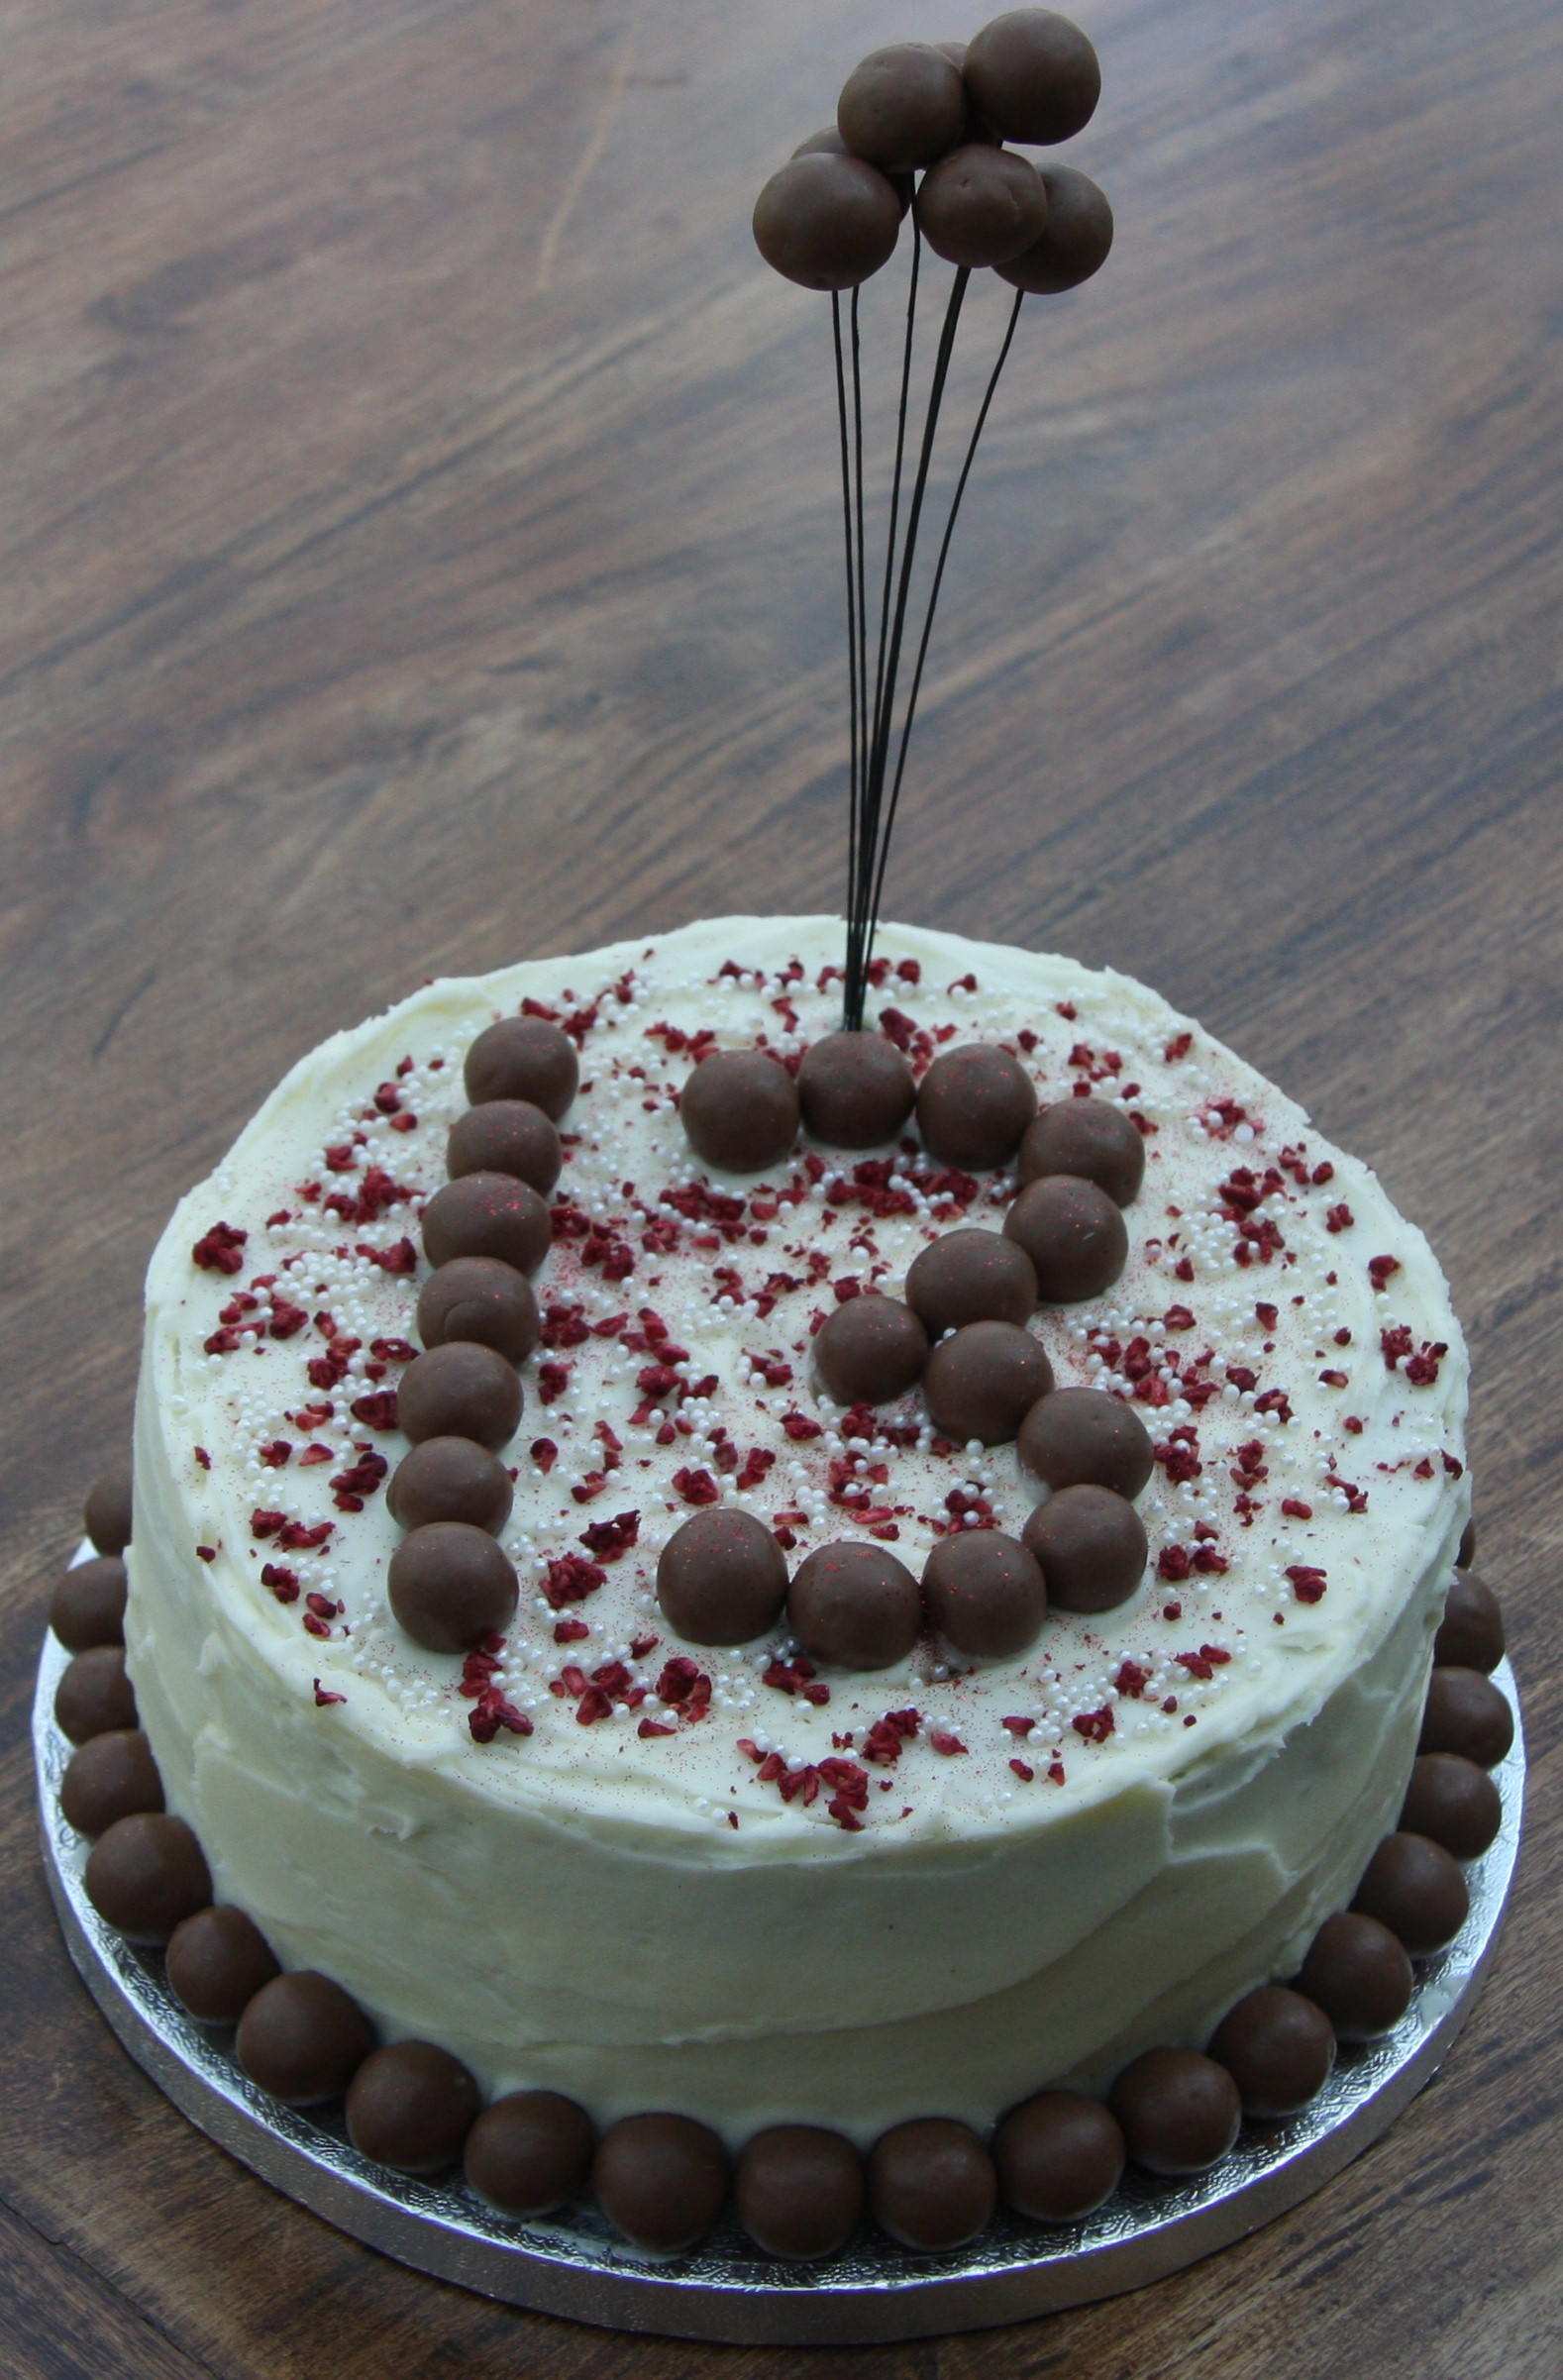 More Birthday Cake Ideas - lovinghomemade